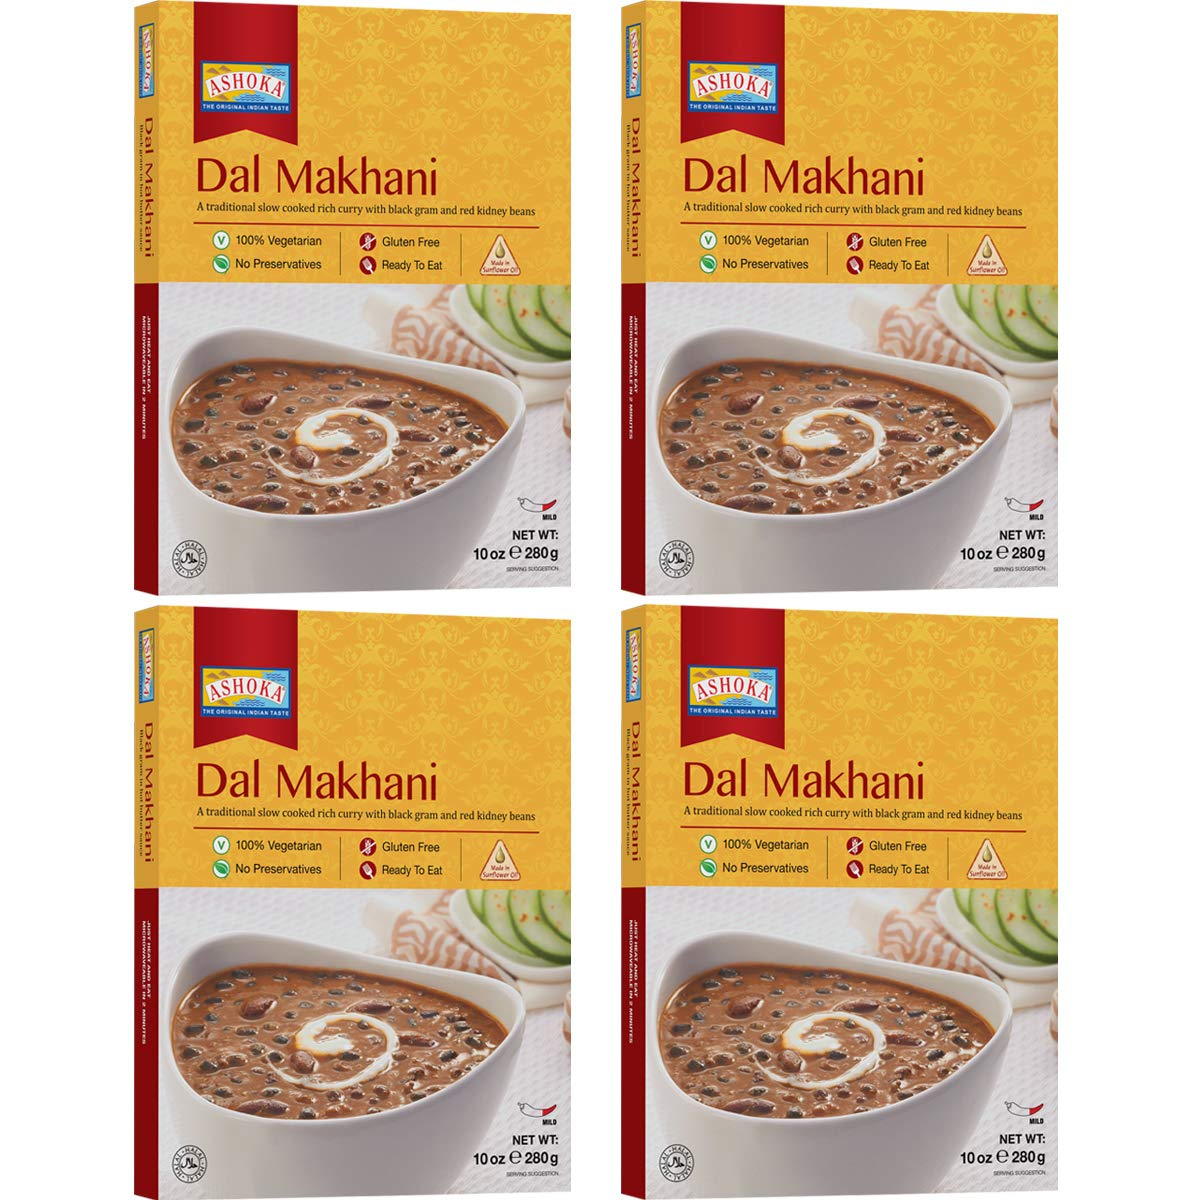 Ashoka Microwaveable Ready to Eat Meals - Dal Makhani Slow Cooked Curry with Black Gram and Red Kidney Beans (Pack of 4)